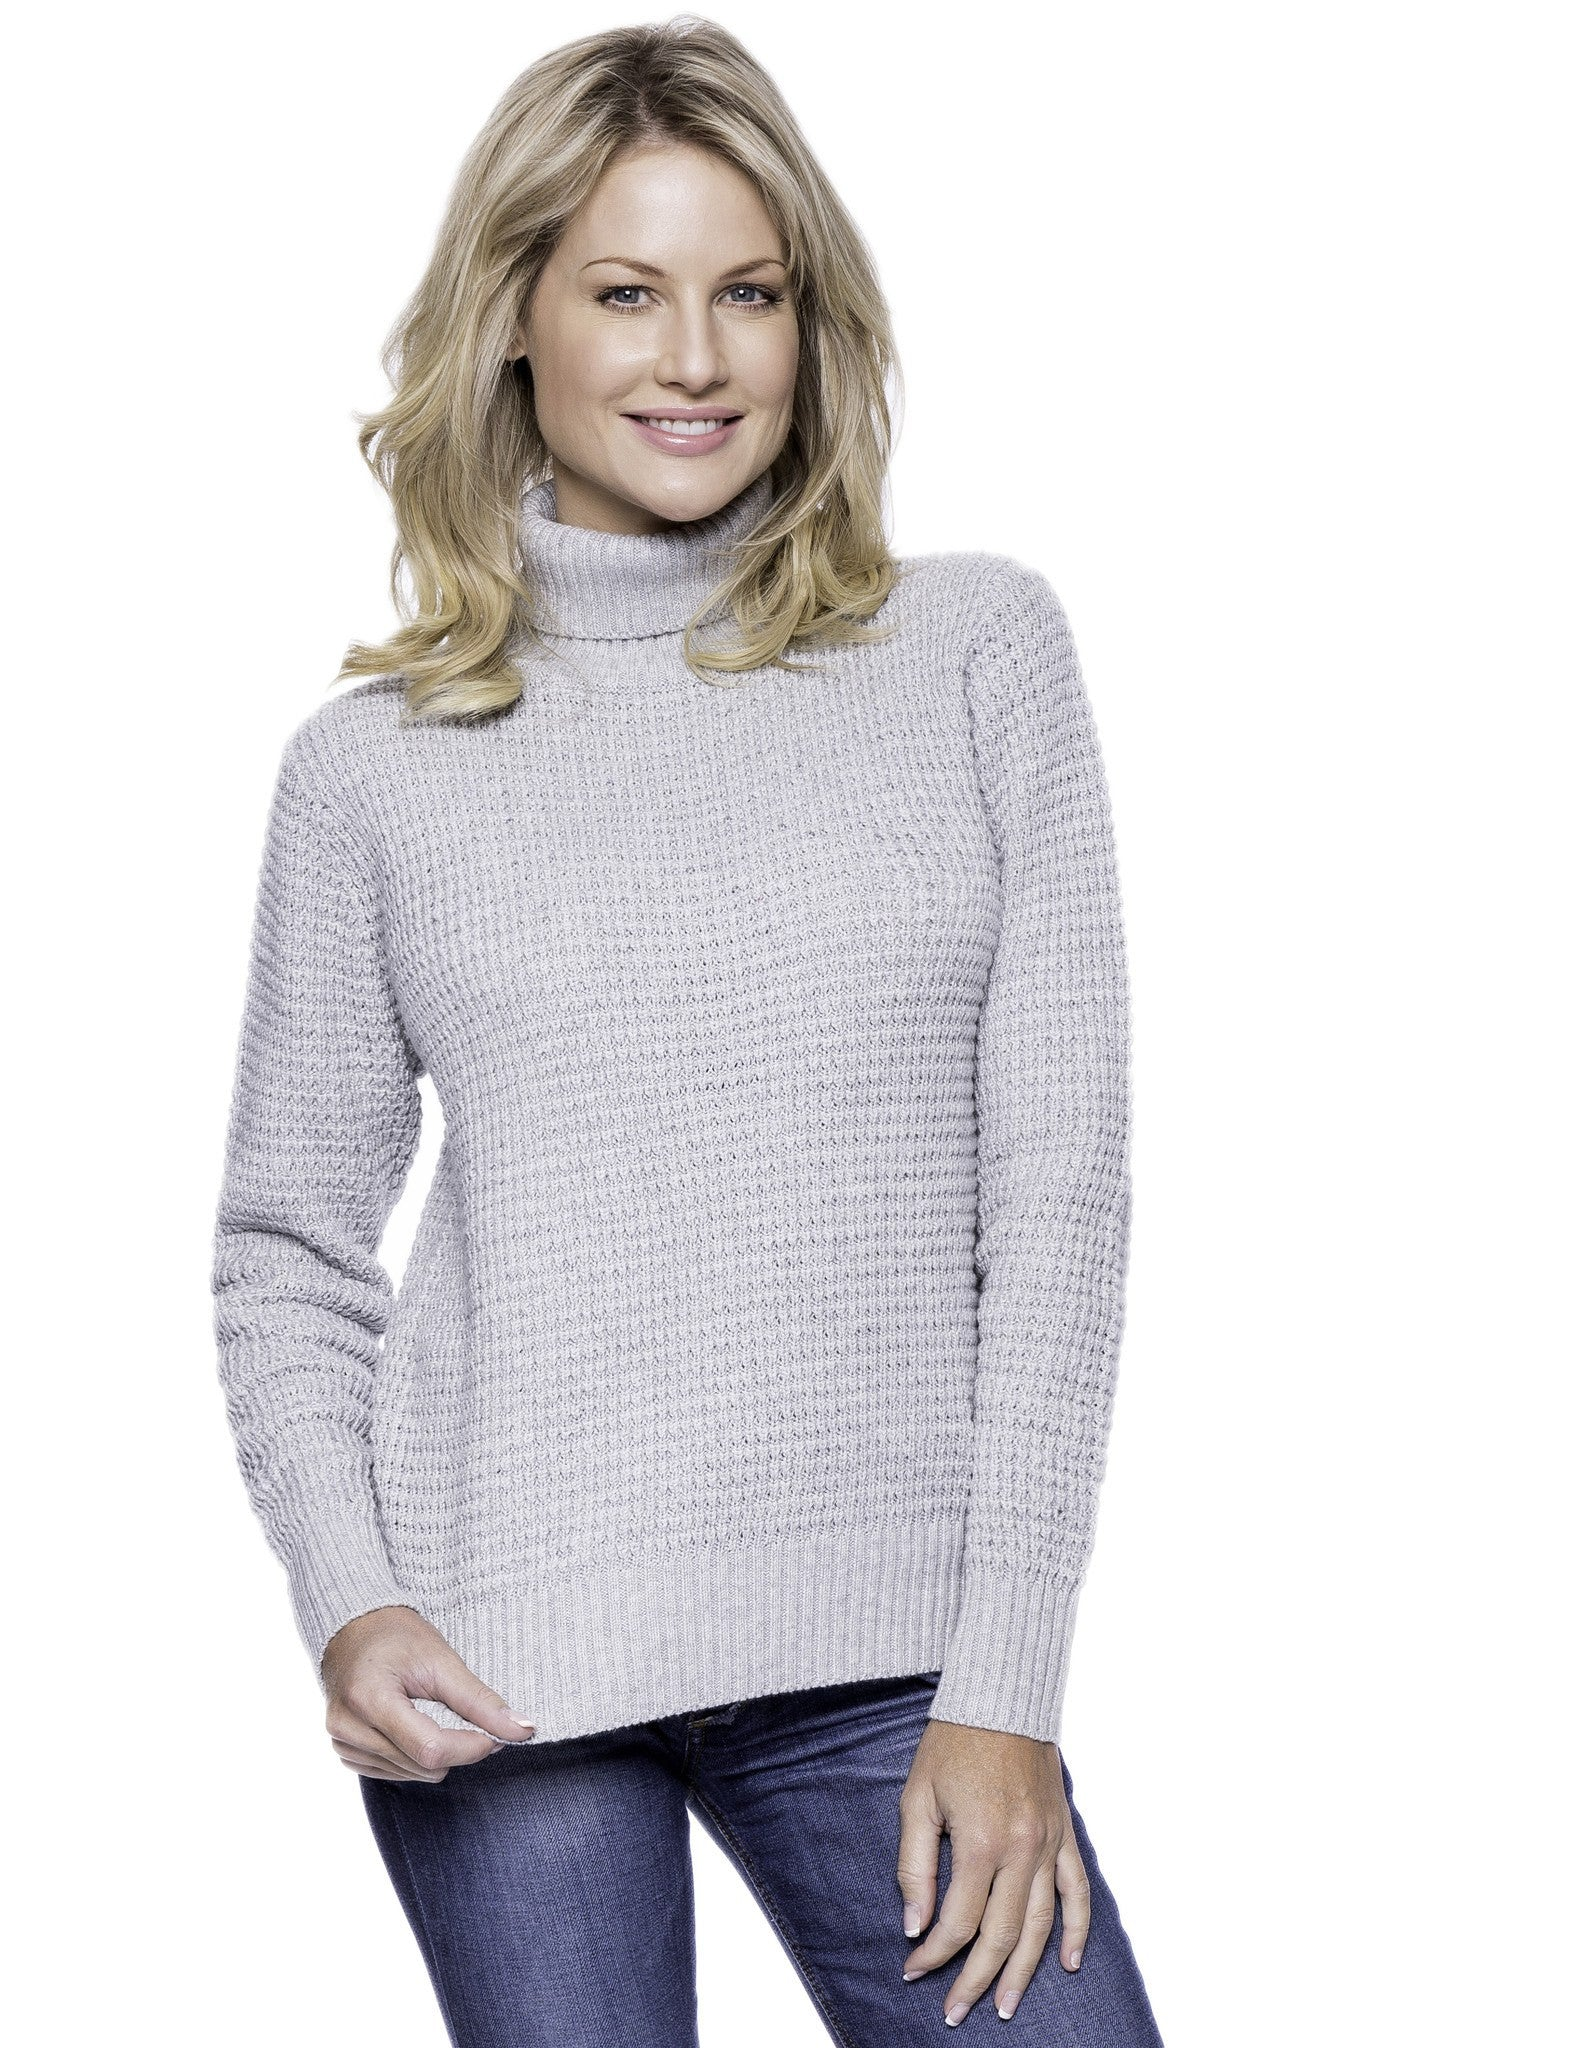 Tocco Reale Women's Cashmere Blend Turtle Neck Sweater